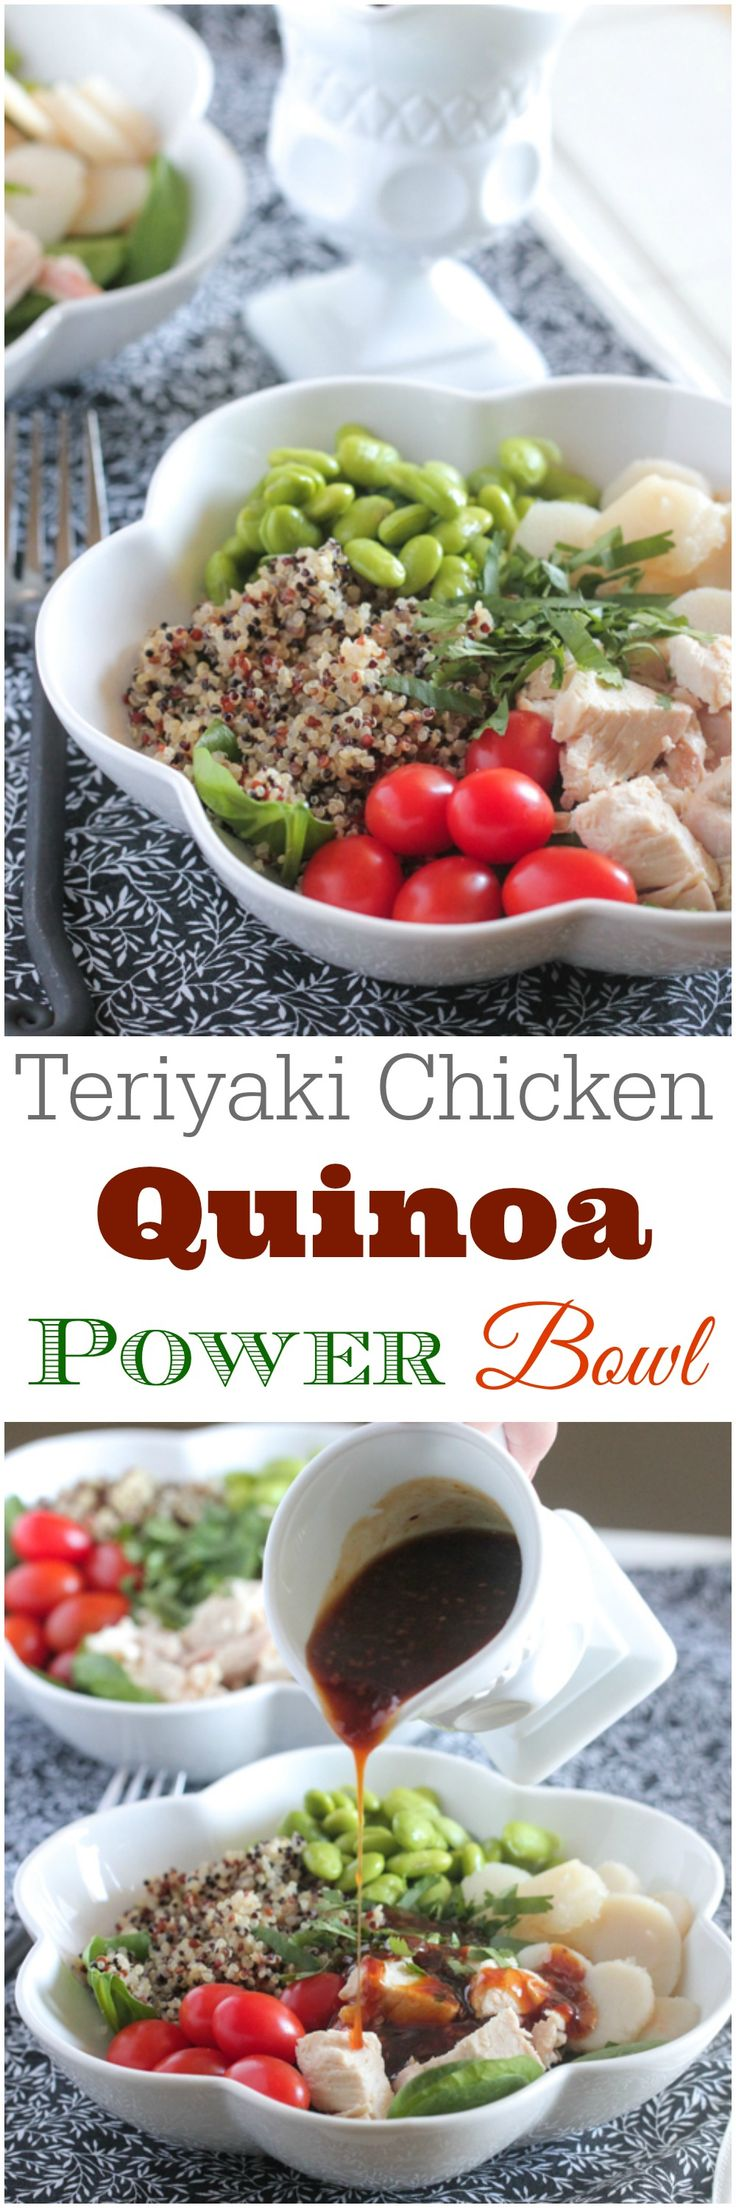 325 best easy healthy recipes images on pinterest recipes teriyaki chicken quinoa power bowl forumfinder Choice Image